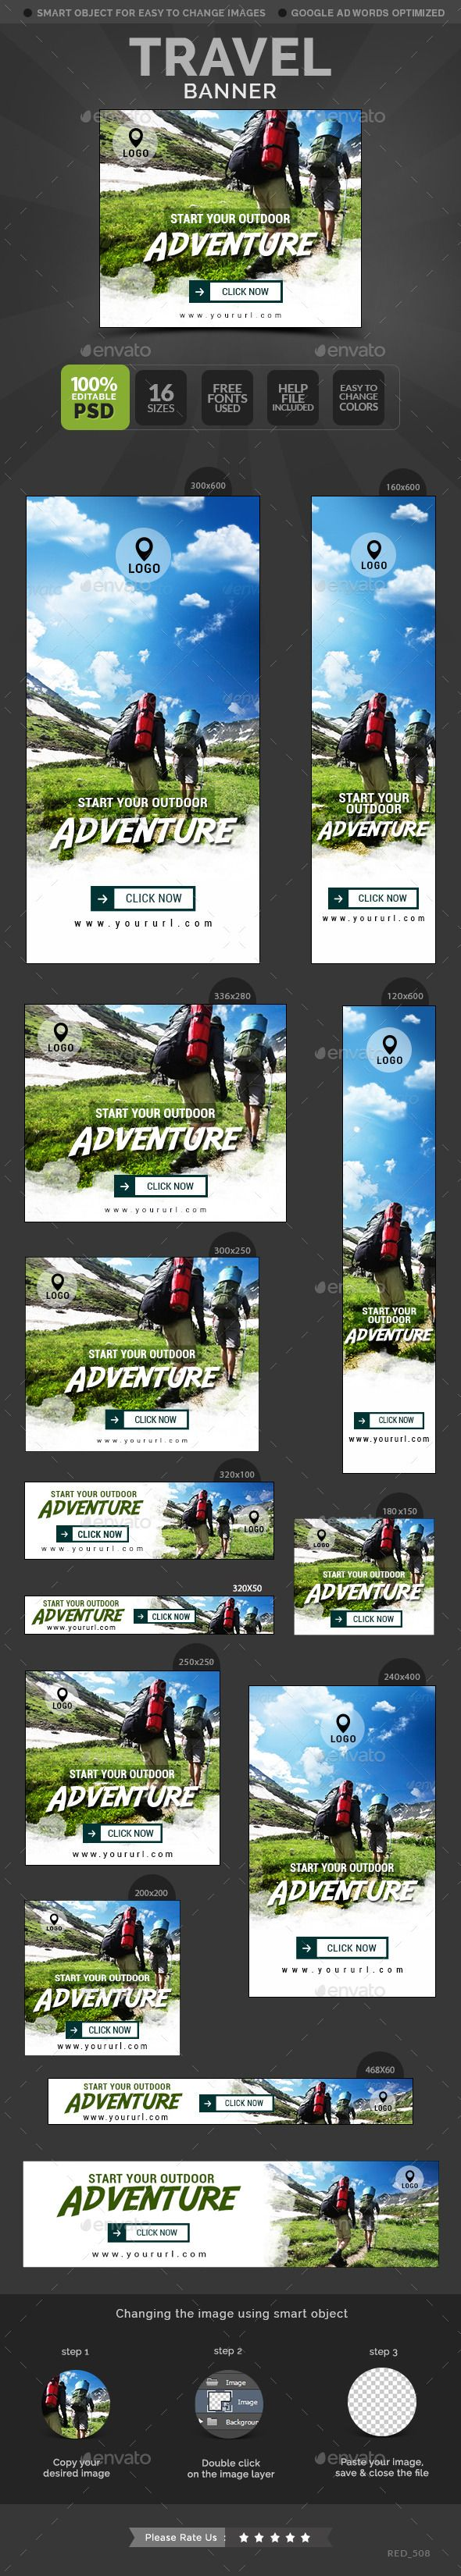 Travel Banners Template #design Download: http://graphicriver.net/item/travel-banners/12473317?ref=ksioks